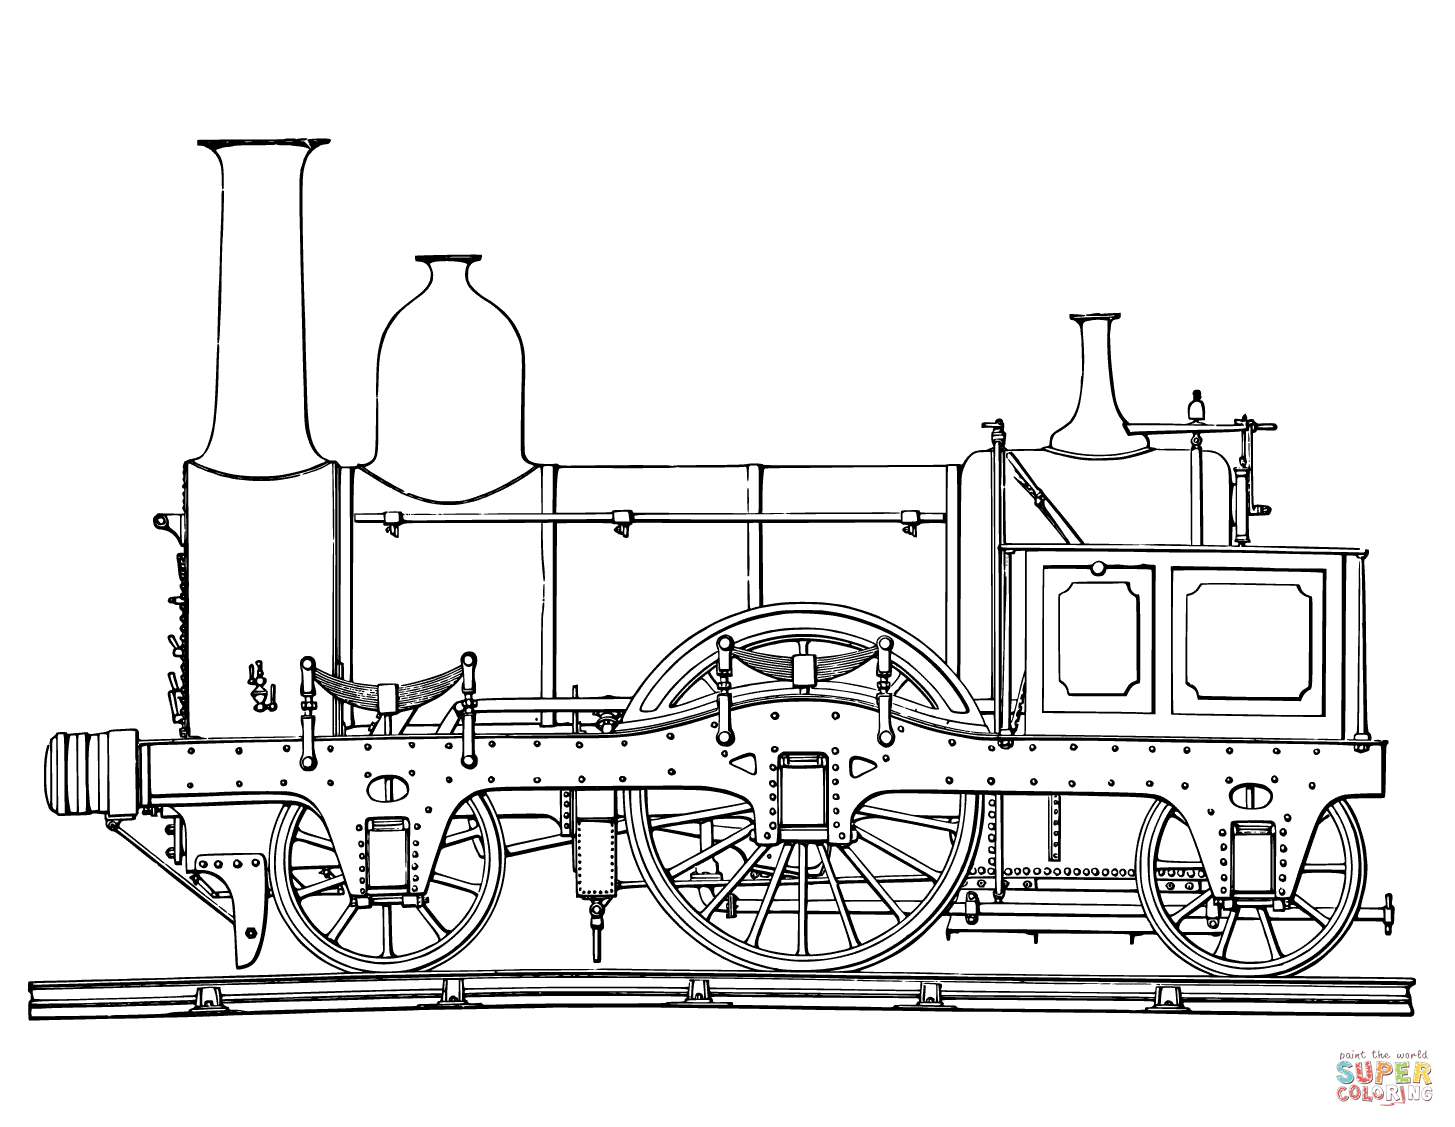 Caboose Drawing at GetDrawings.com | Free for personal use Caboose ...